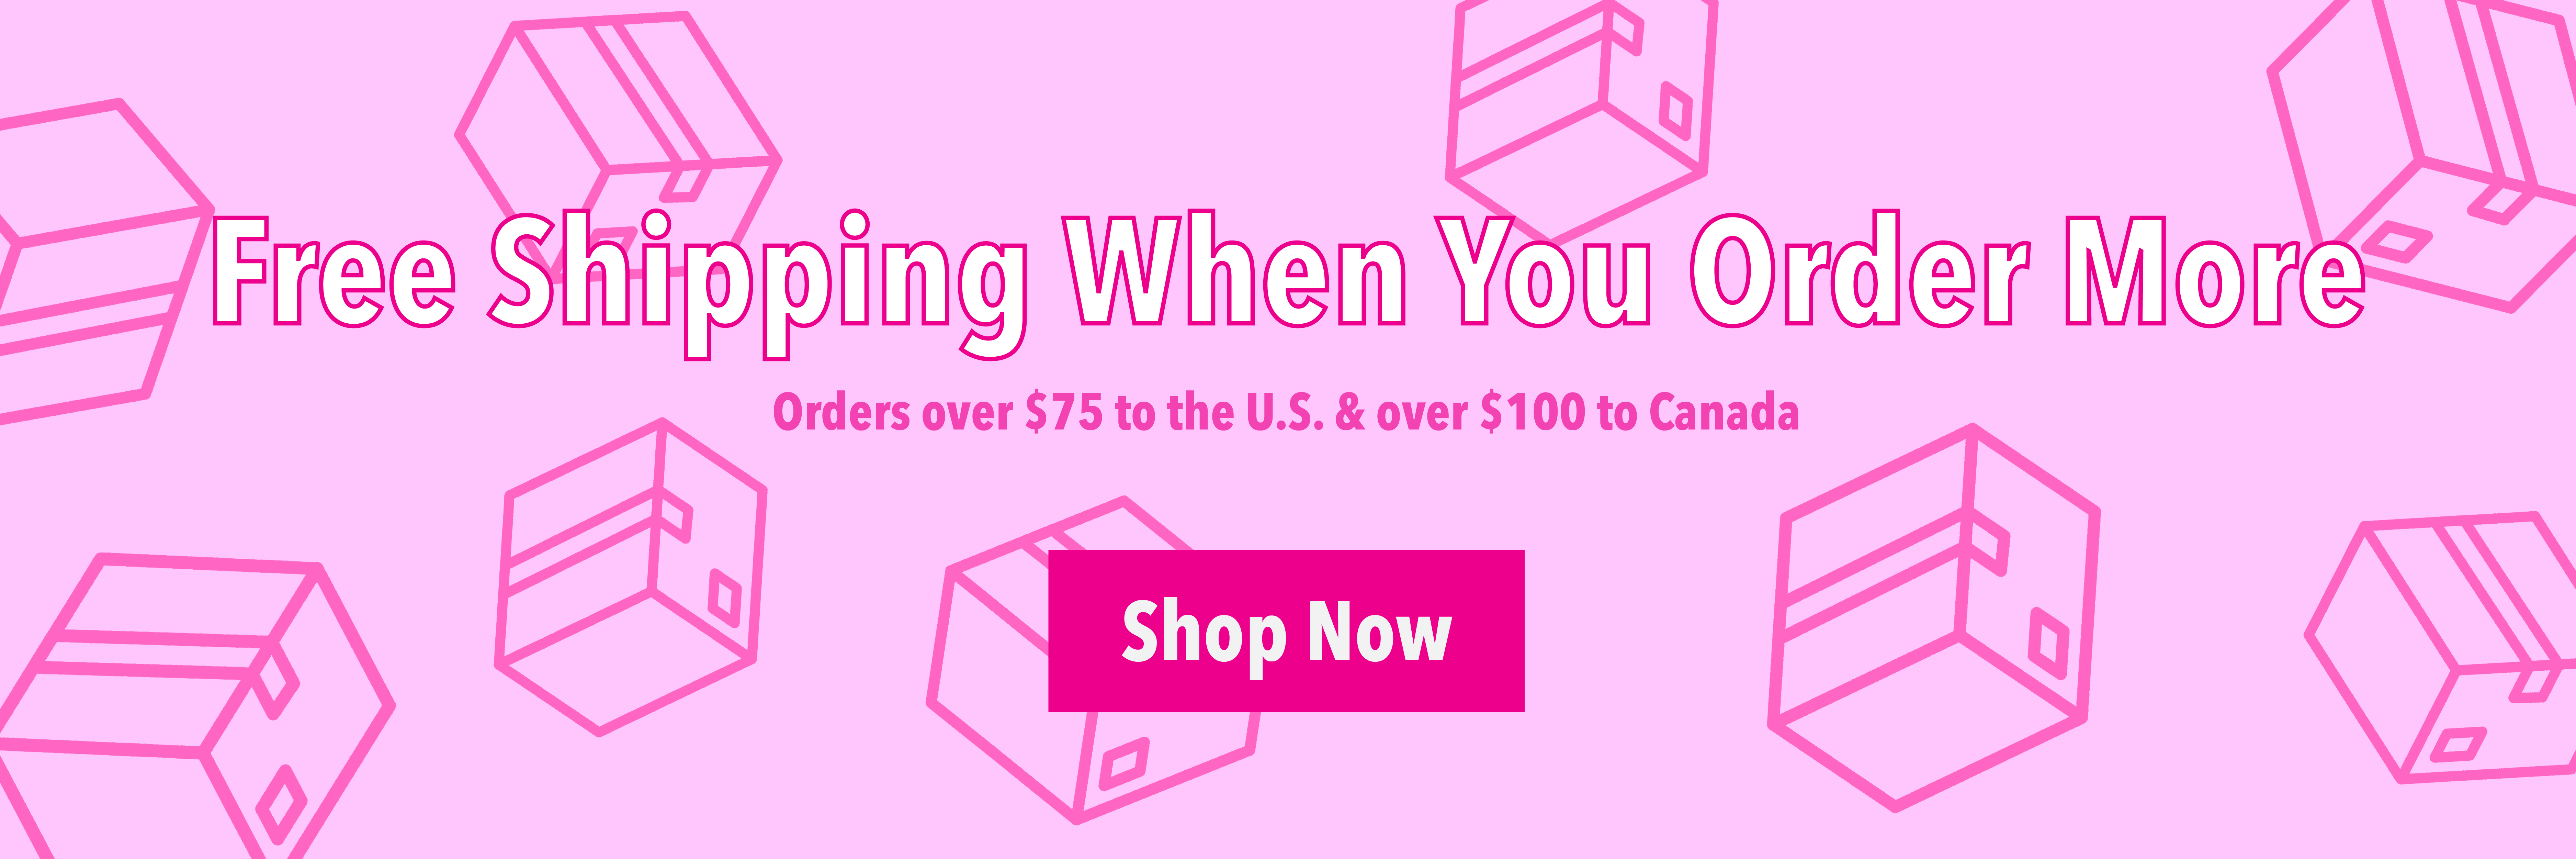 Free Shipping when you order more